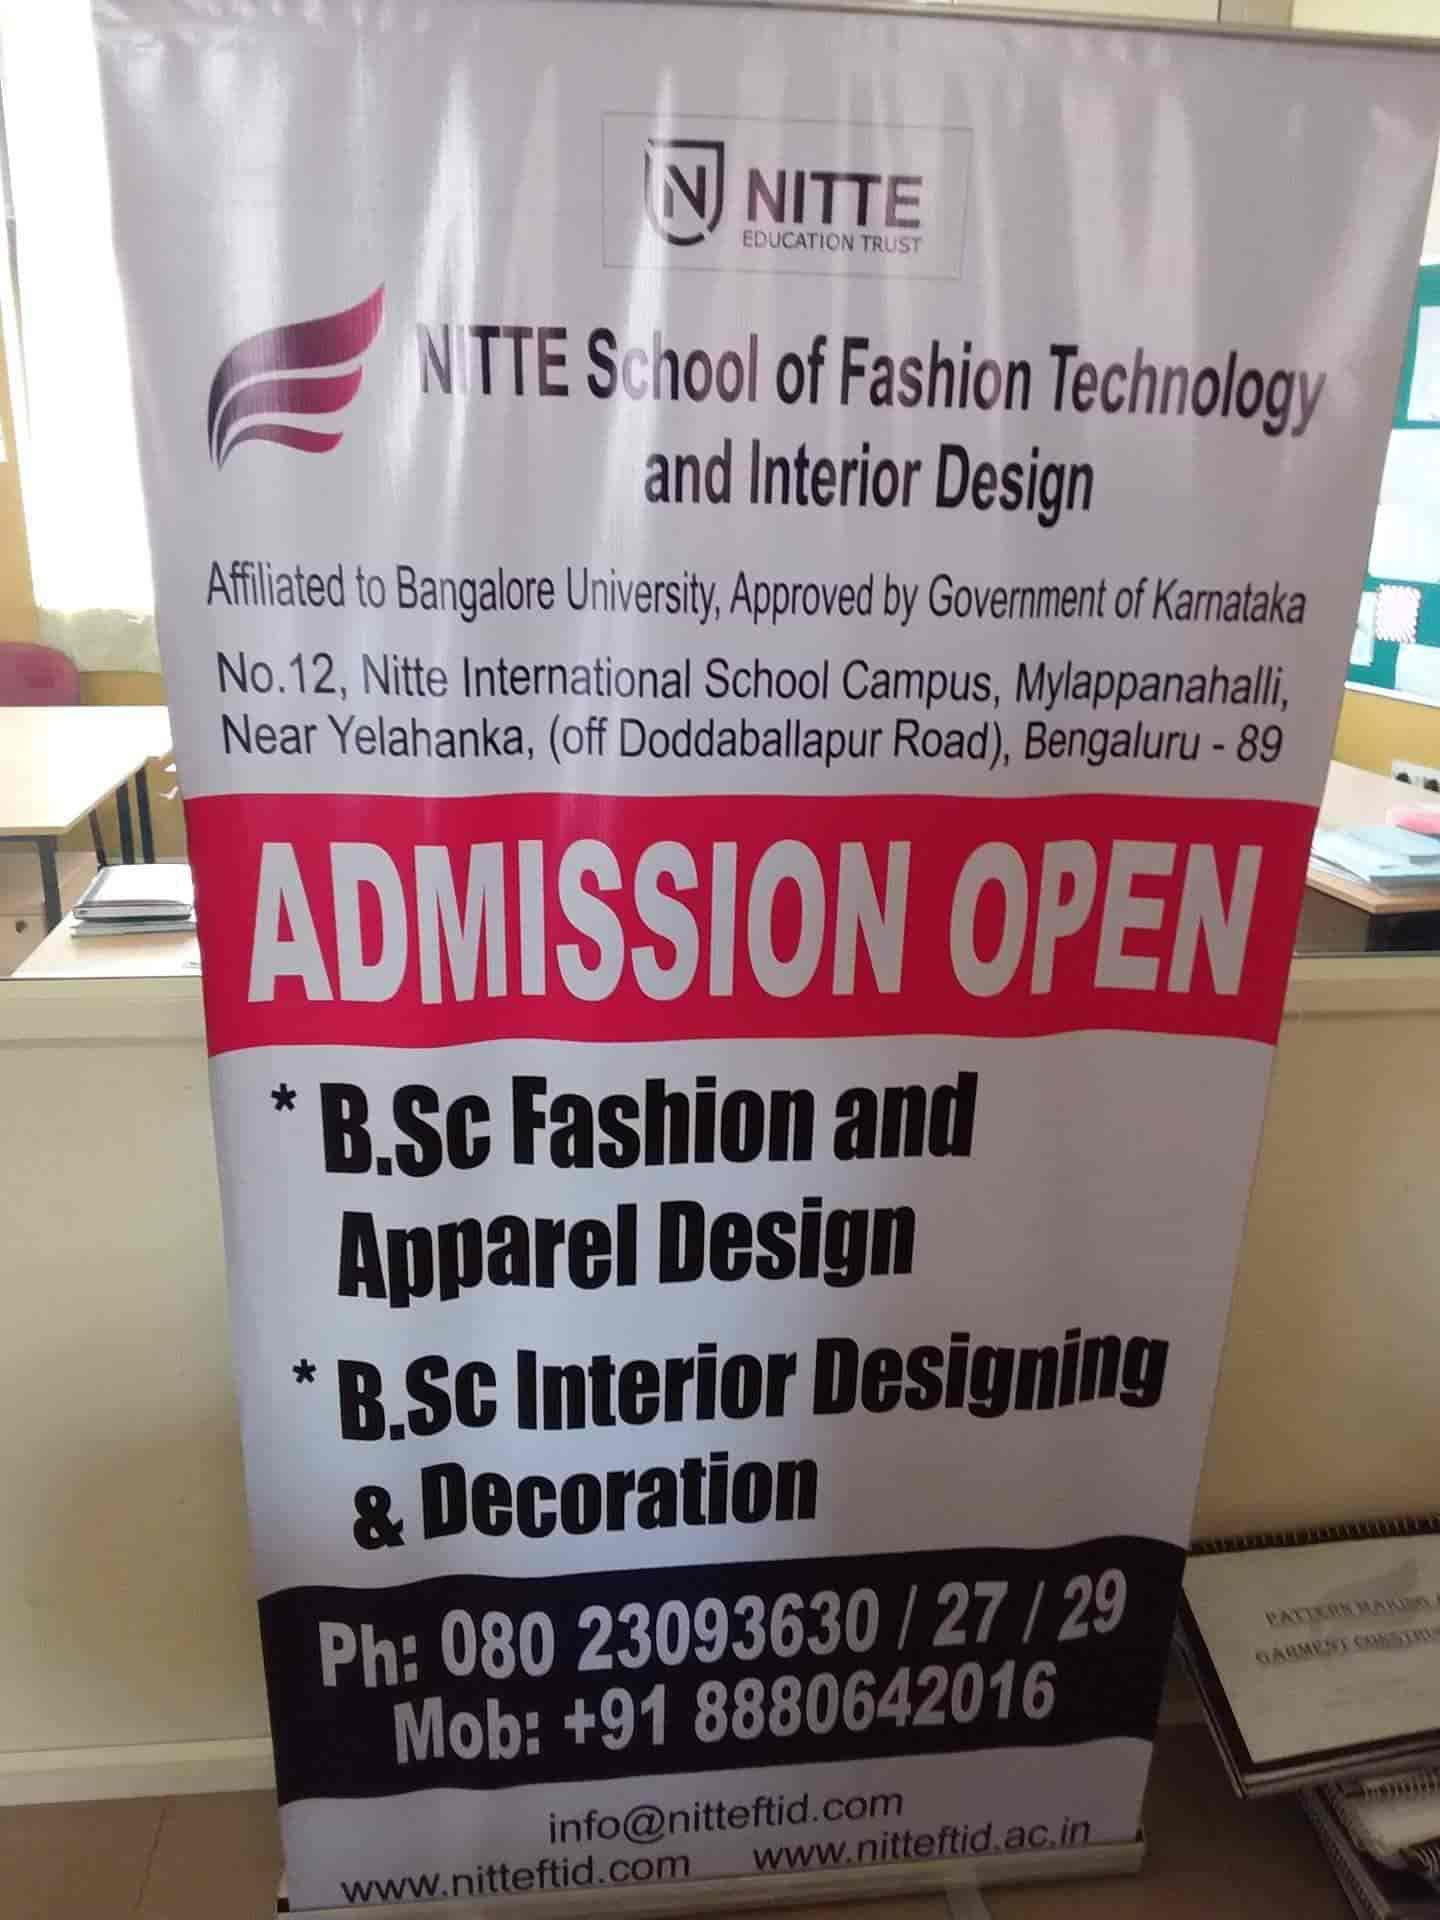 Nitte School Of Fashion Technology And Interior Design Reviews Yelahanka Bangalore 17 Ratings Justdial